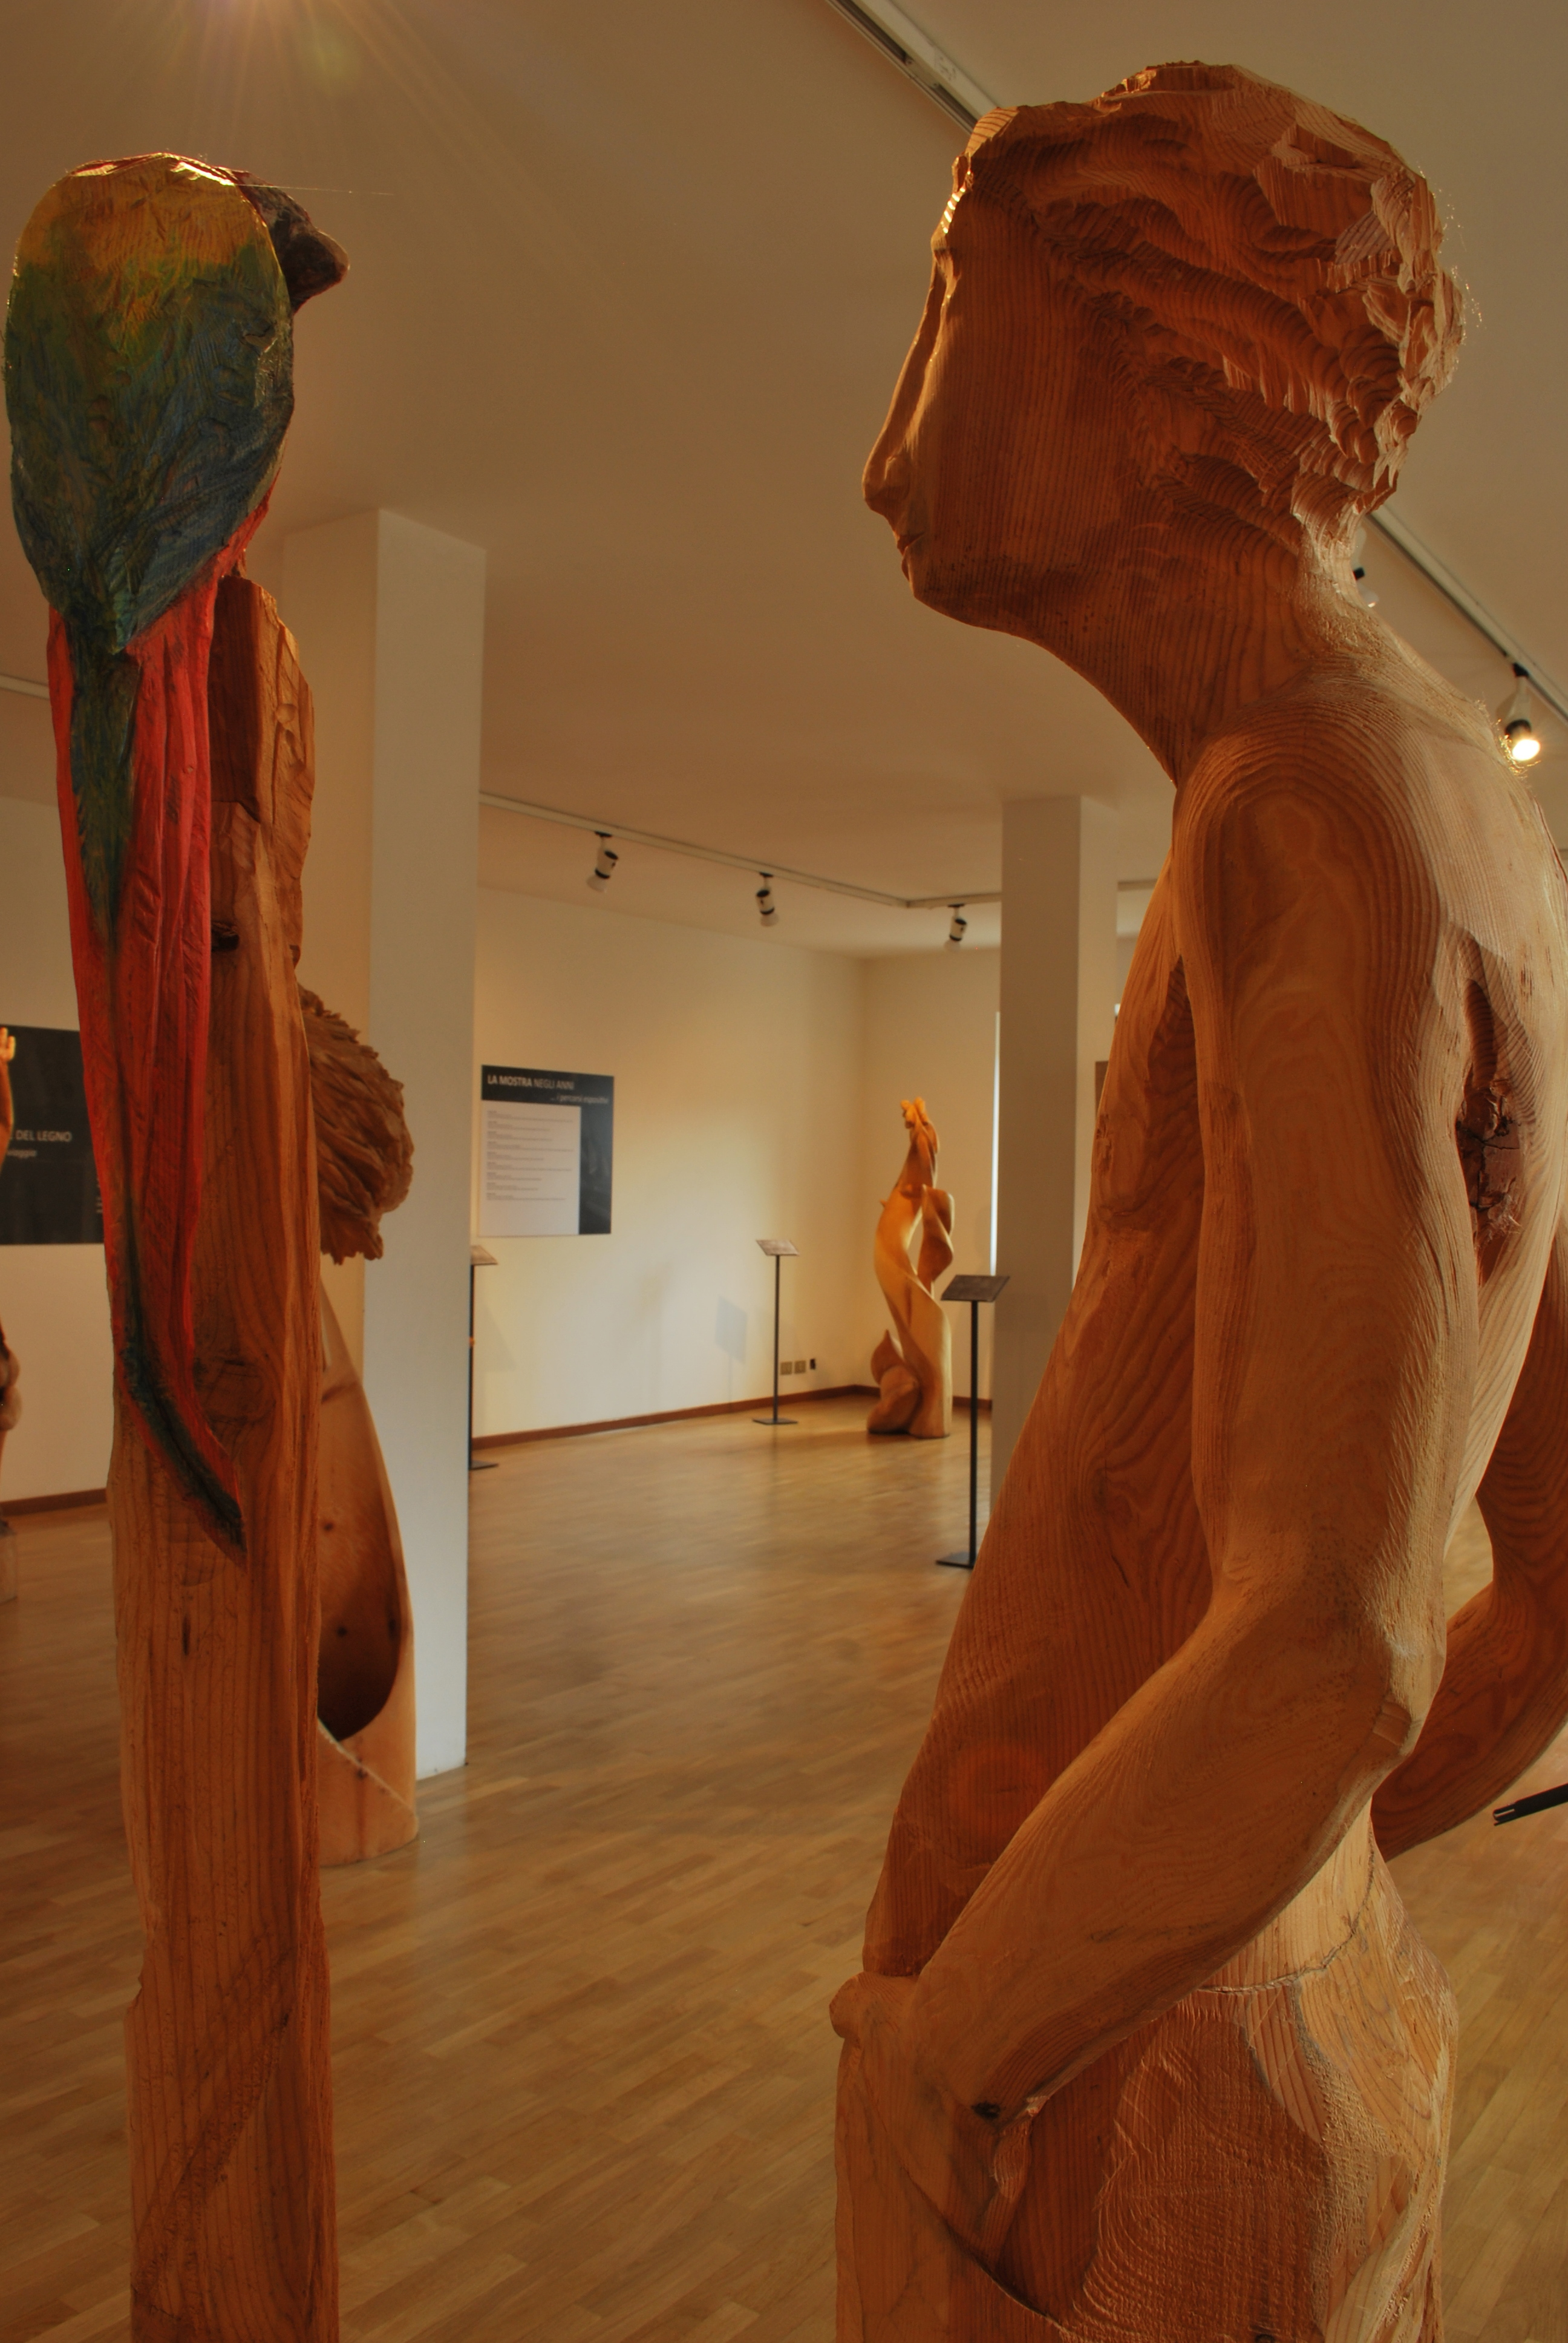 Wood Museum and the museum of contemporary art of wooden sculpture